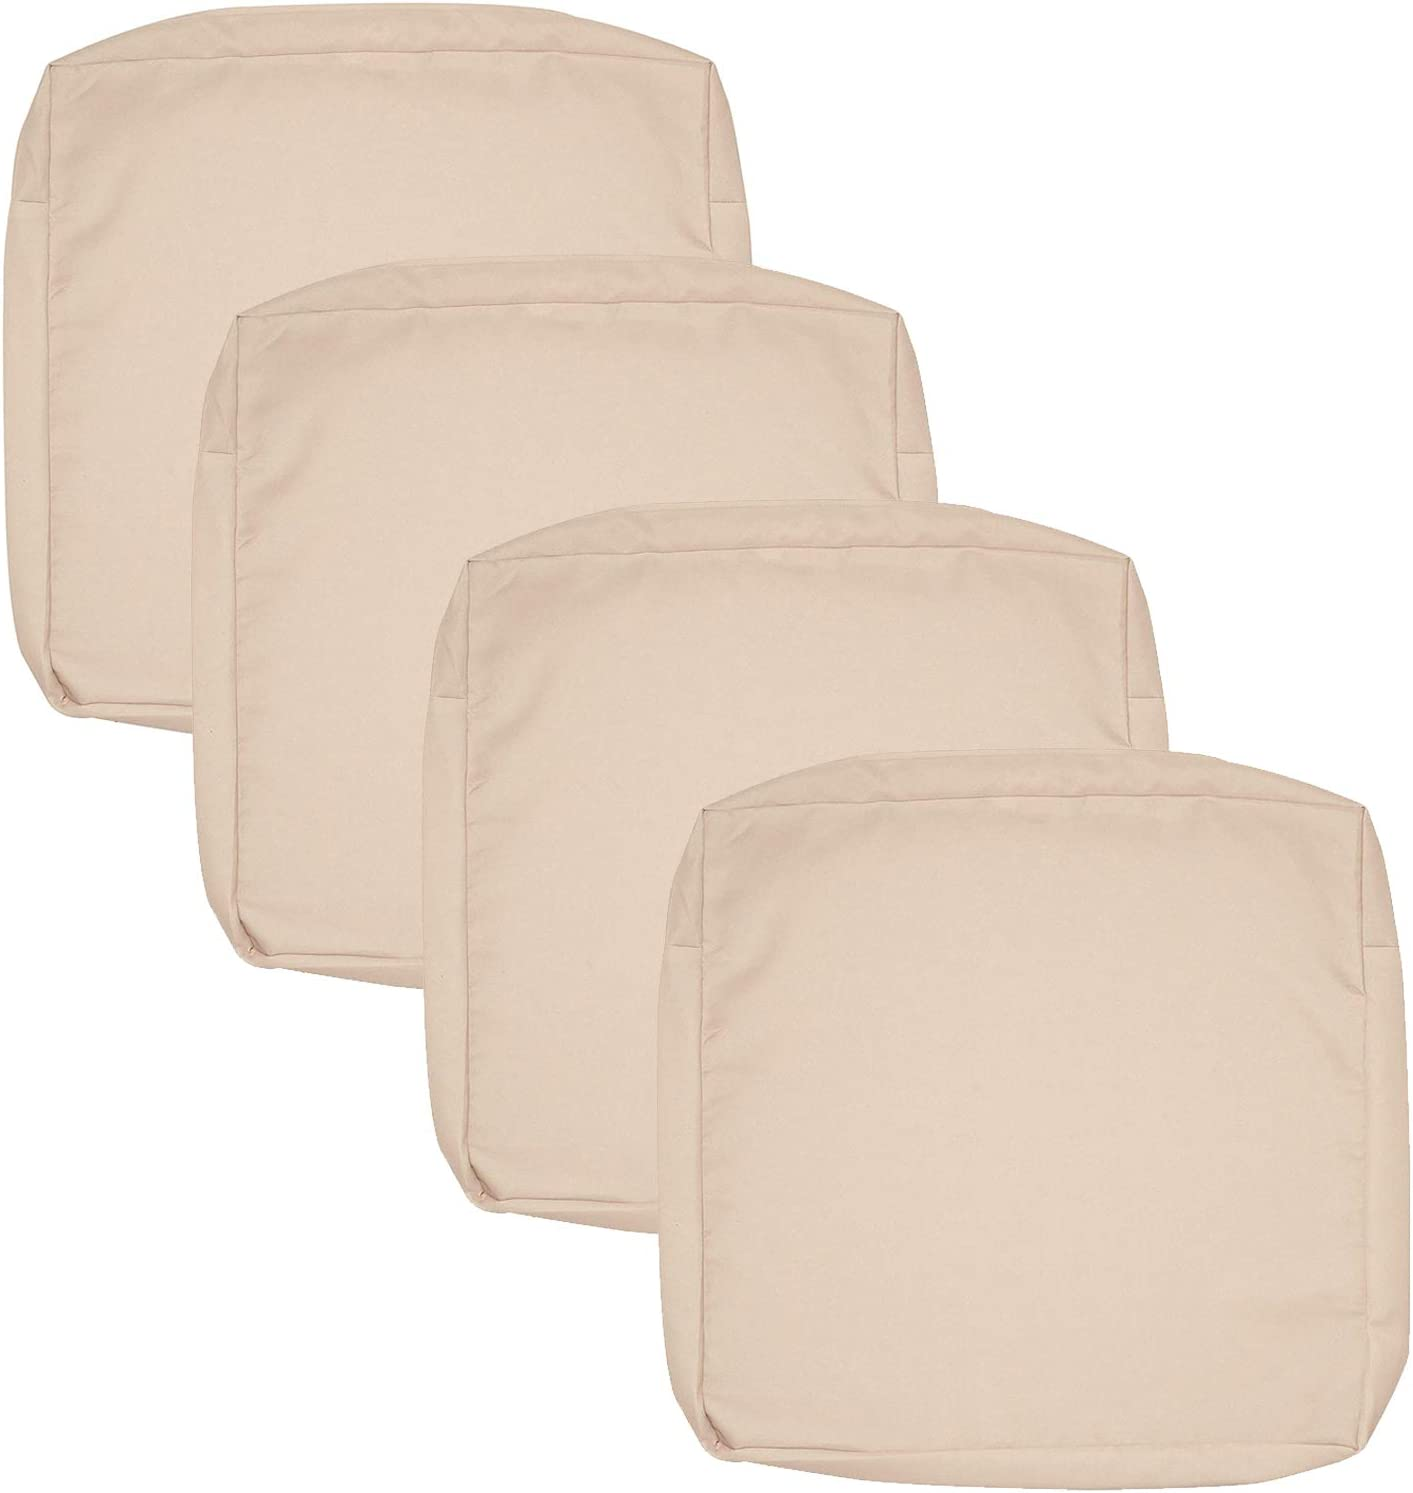 FLYMEI Outdoor Seat Cushion Cover Set, Large Patio Chair Seat Covers Only, Waterproof Patio Cushion Cover (24'' X 22'' X 4'' 4Pack, Antique Beige)